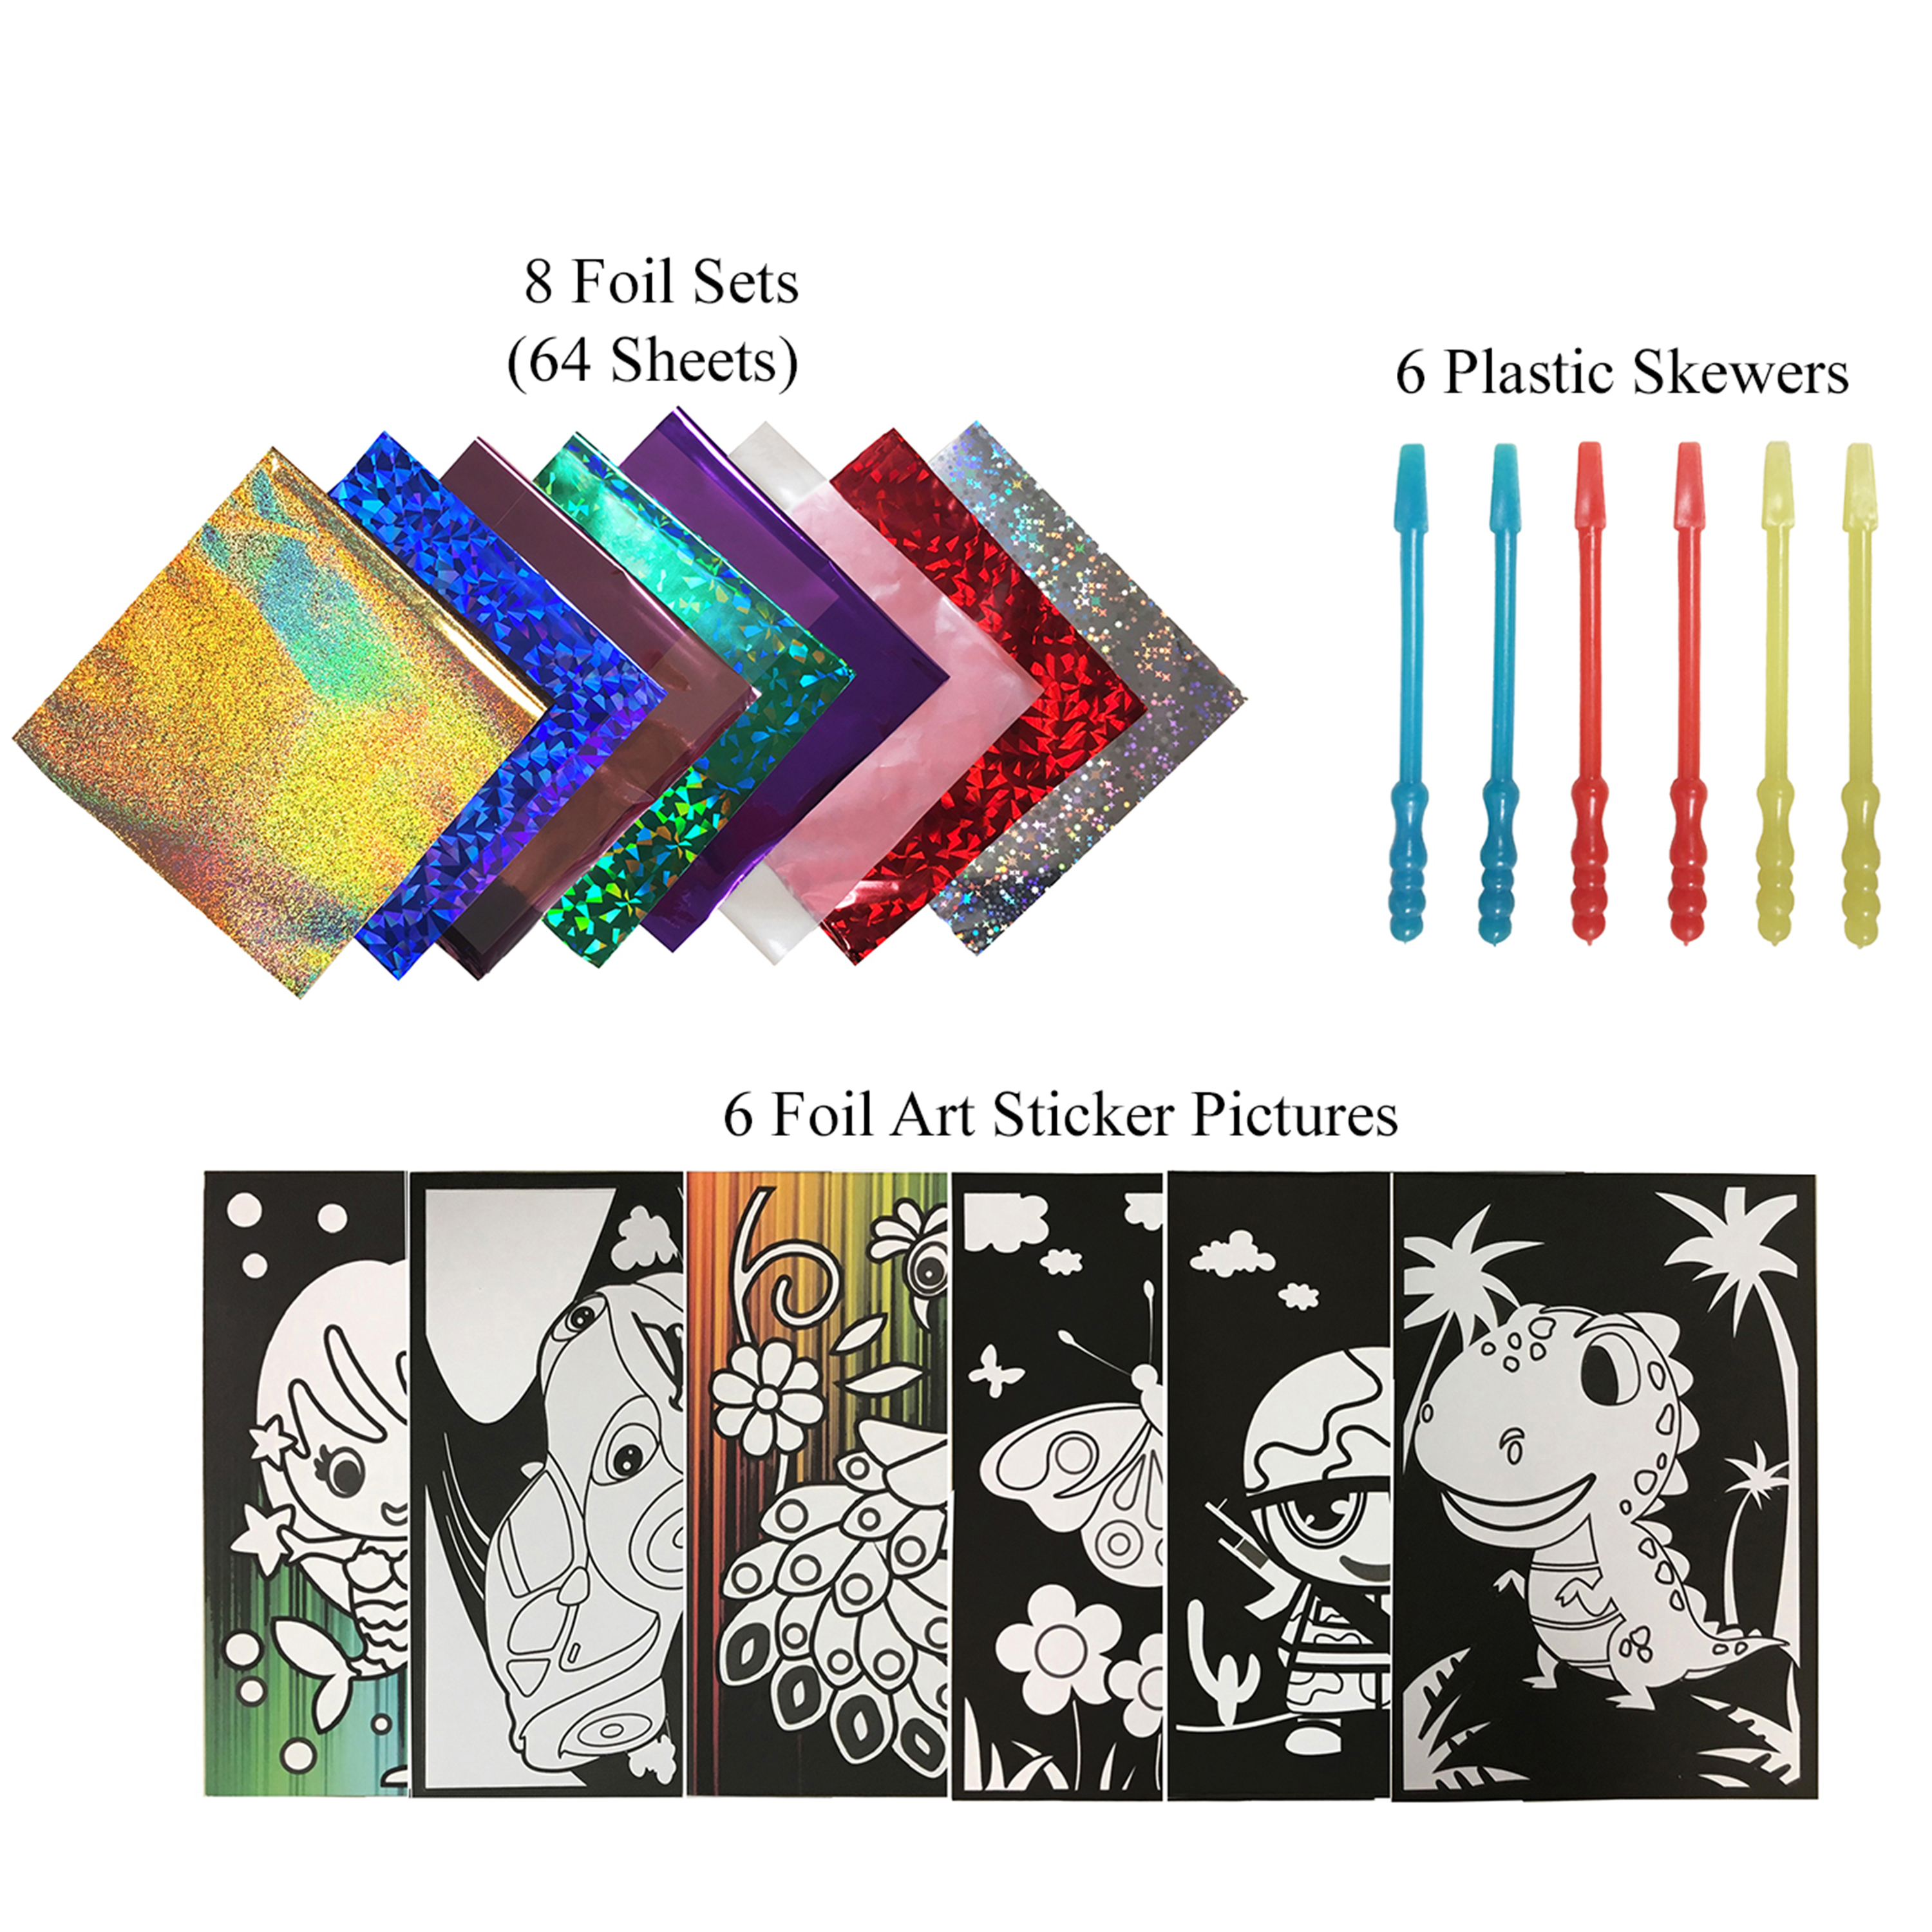 VHALE 6 Sheets Foil Art Sticker Pictures with 64 Foil Sheets & 6 Skewers to Create Fun Sparkly Foil Art, Coloring, Painting, Creative Arts and Crafts, Travel Toys for Children Kids of All Ages